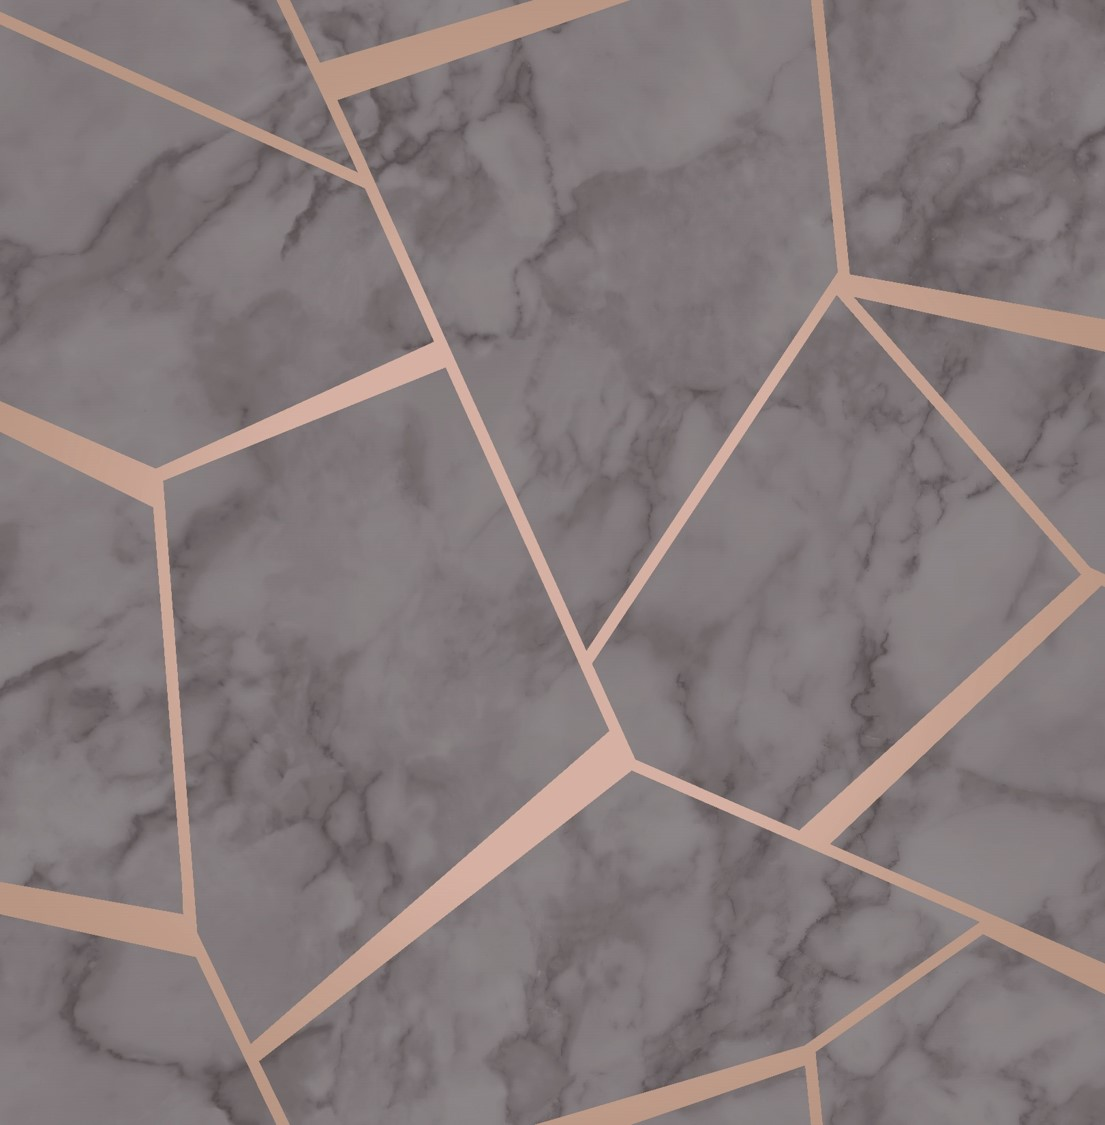 16 Rose Gold And Copper Details For Stylish Interior Decor: Copper/Rose Gold Fractal Marble Geometric